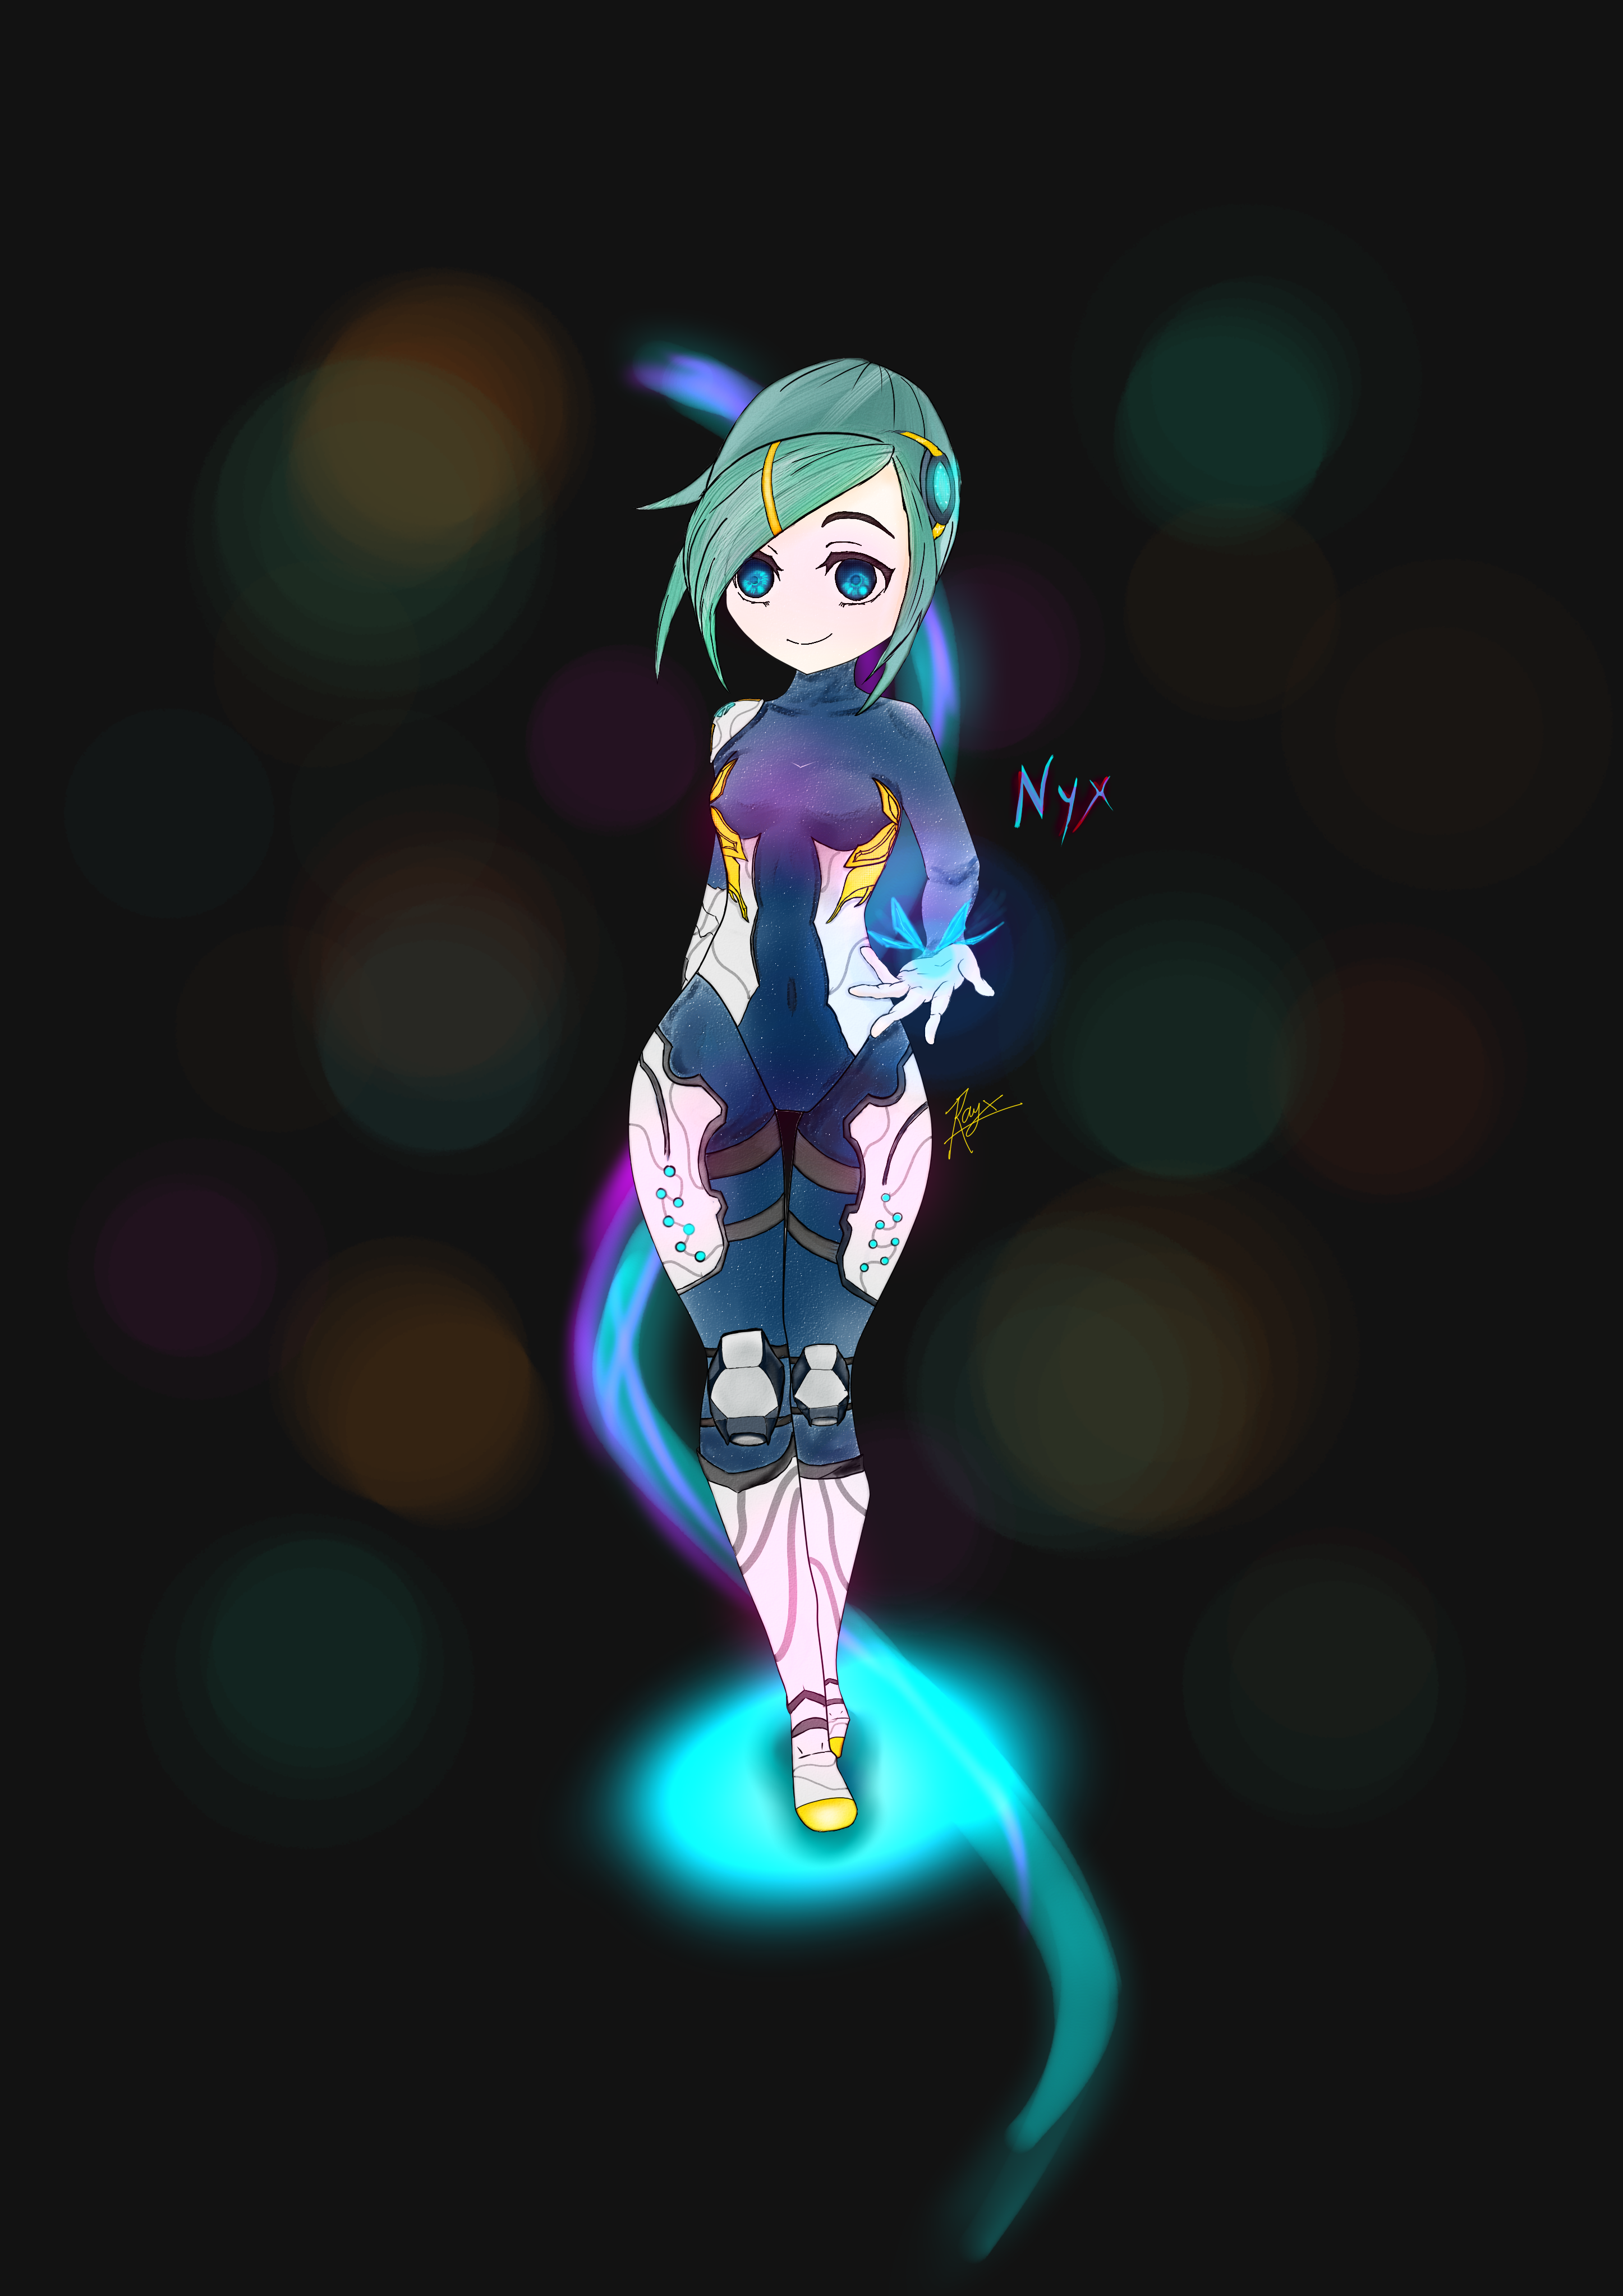 nyx_by_rayxrevive-dcd5dgz.png